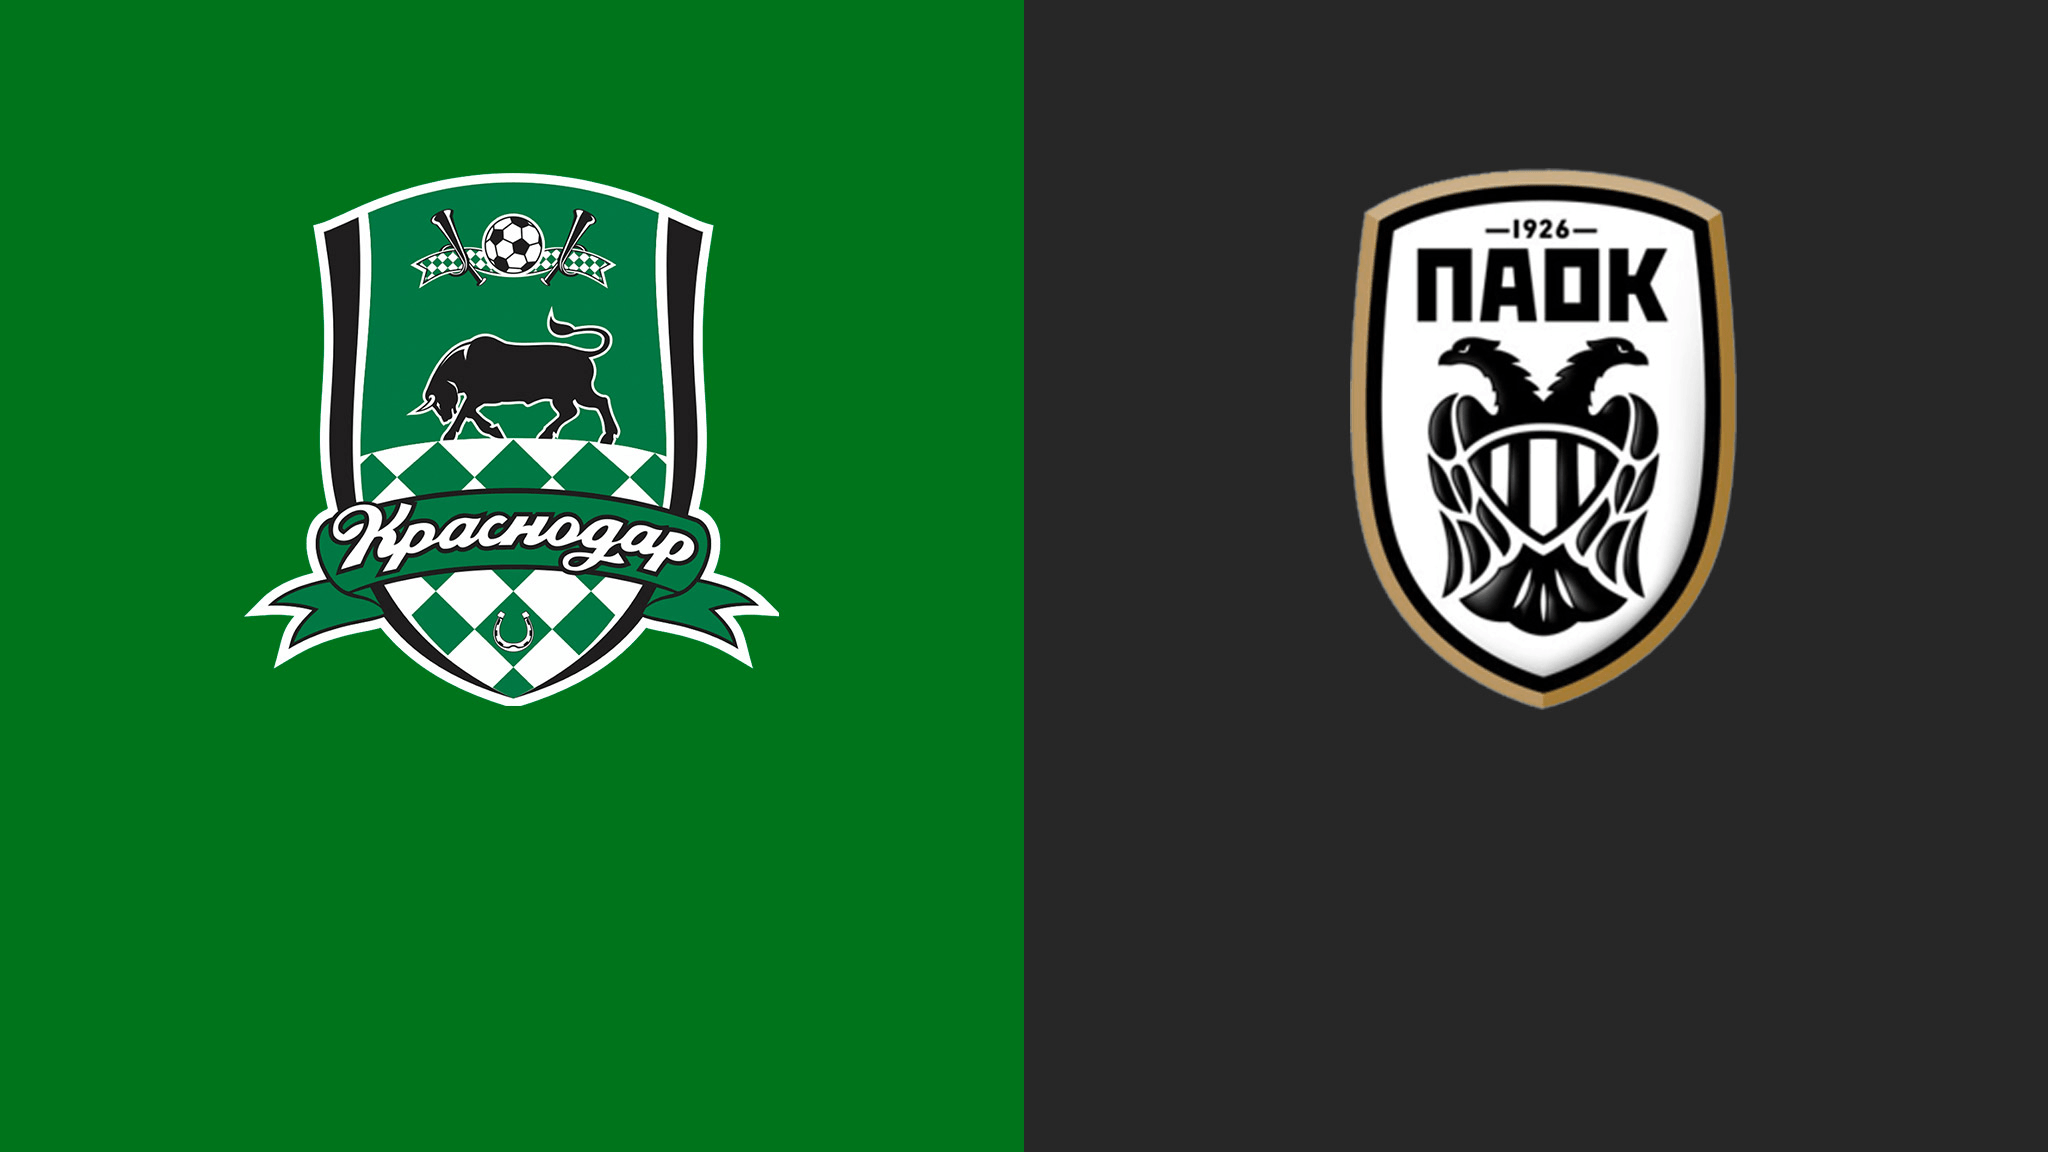 Watch Krasnodar V Paok De Delayed Live Stream Dazn De